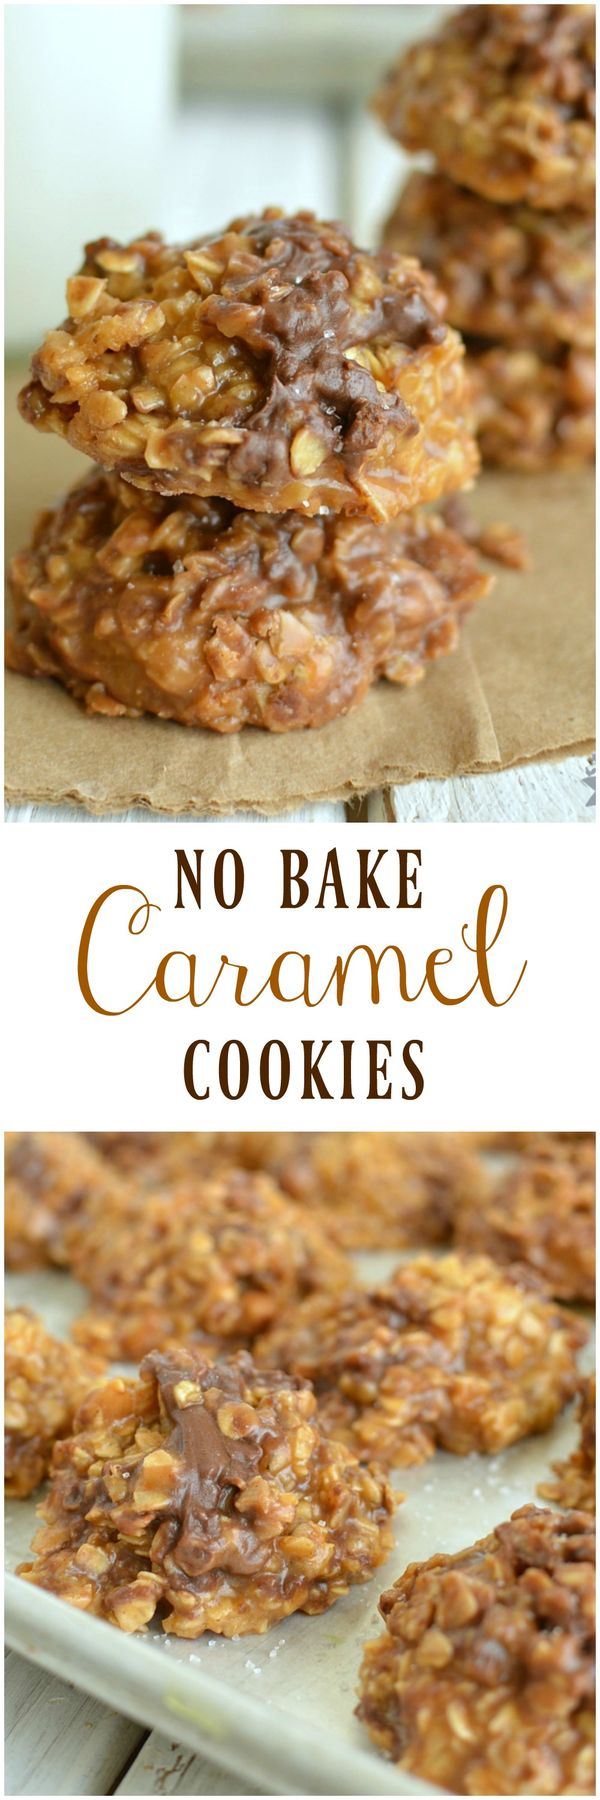 No Bake Caramel Cookies